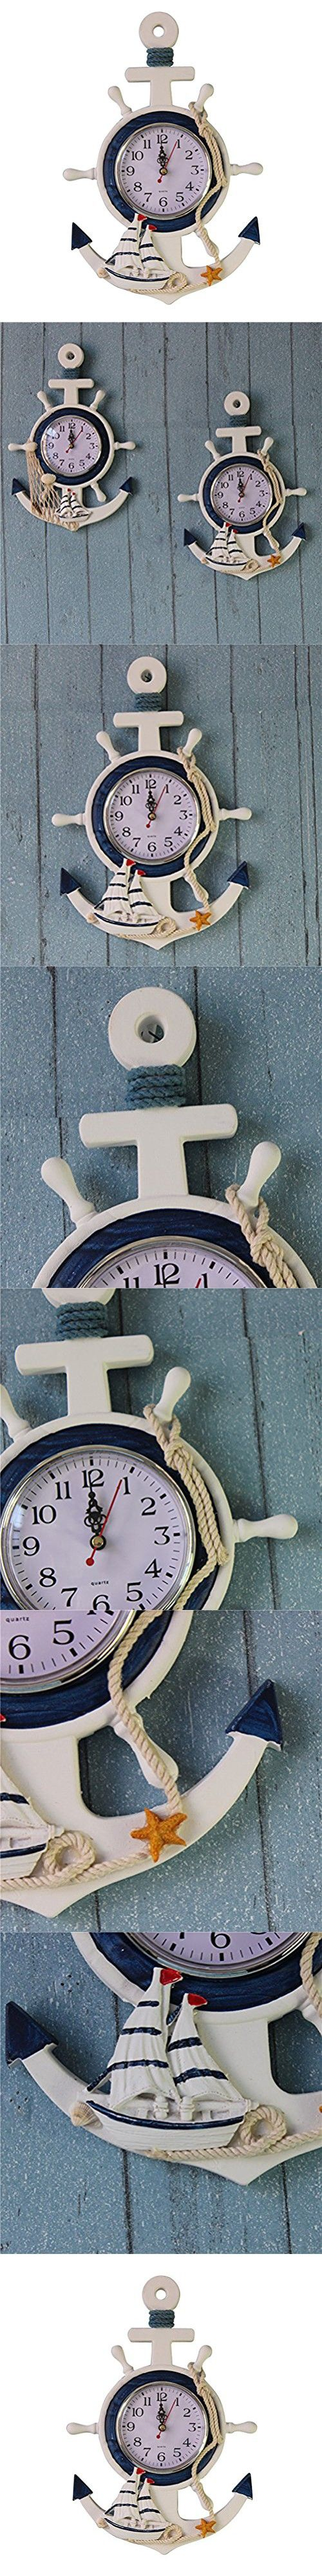 725 best nautical home decor images on pinterest nautical blue winomo anchor clock beach sea theme nautical ship wheel rudder steering wheel wall hanging decoration amipublicfo Images